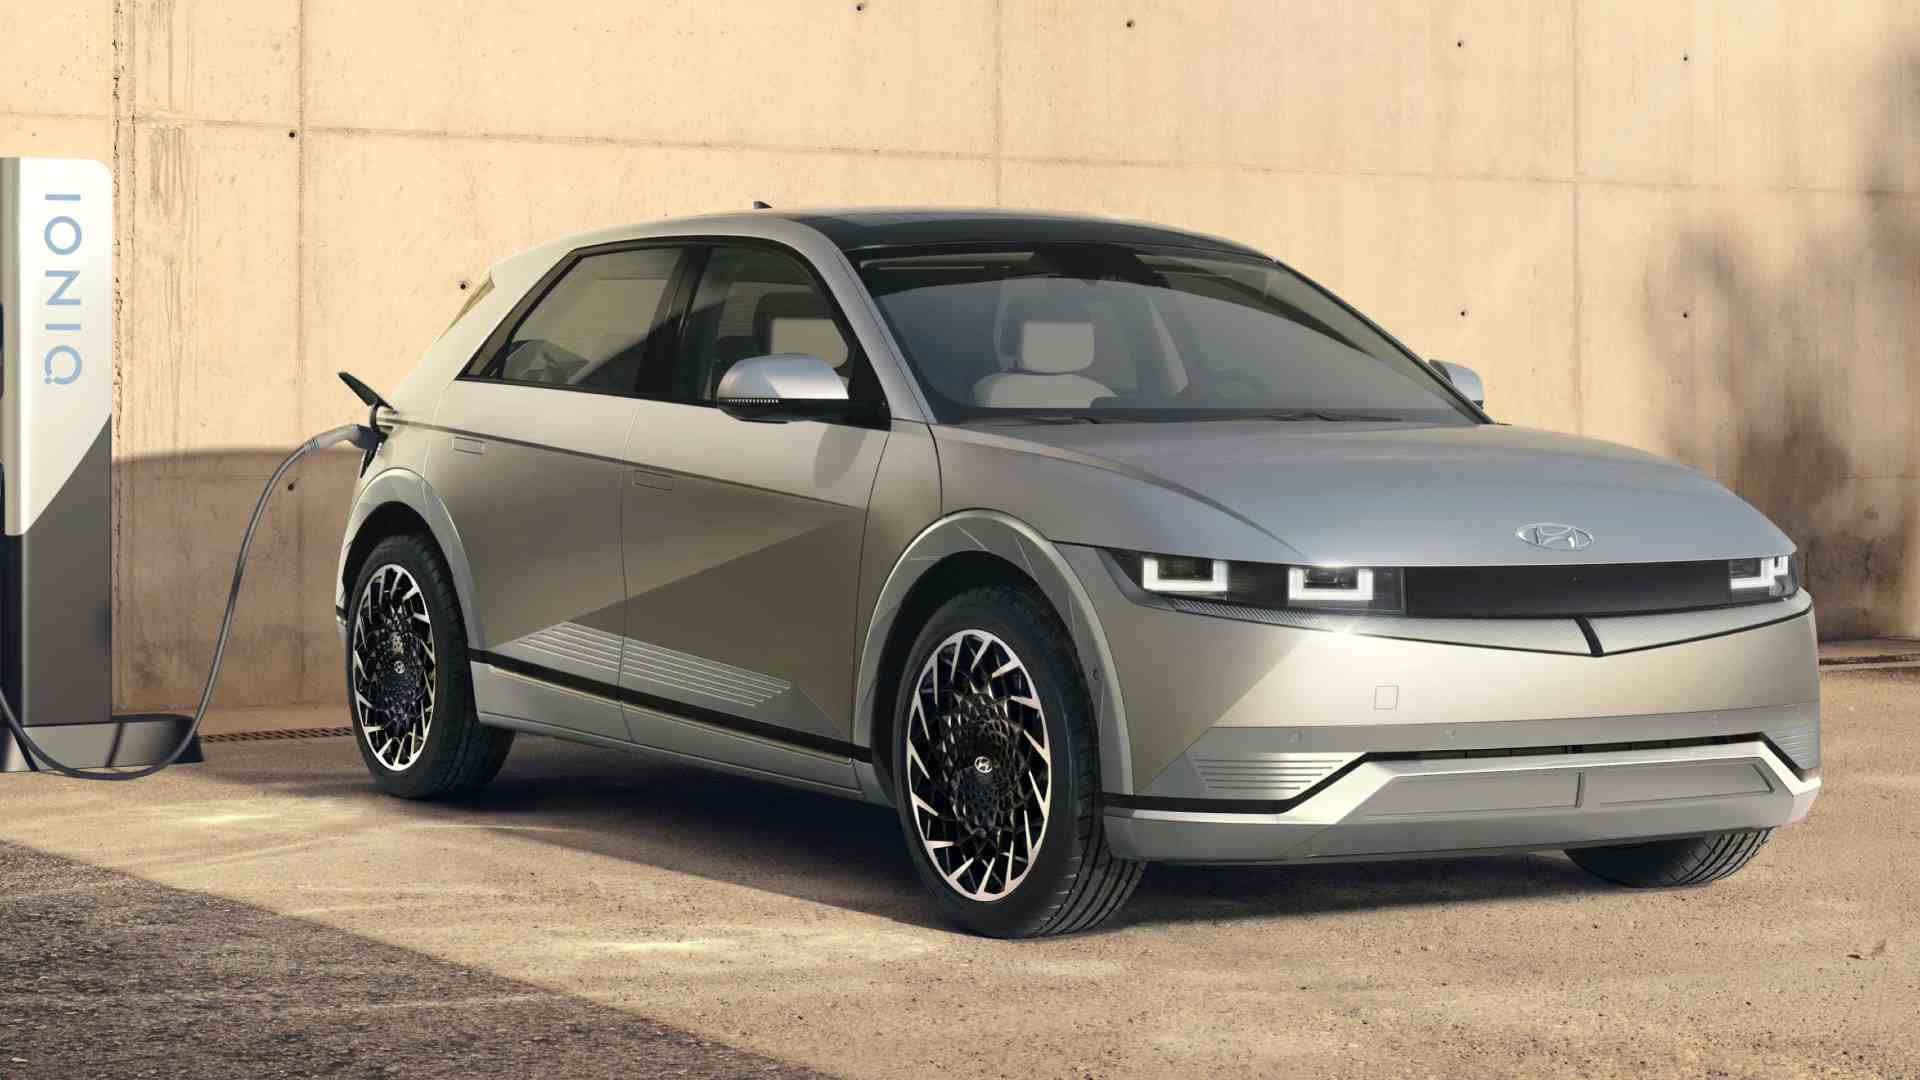 Full localisation will take time, and Hyundai believes imports will help grow the EV market in the meantime. Image: Hyundai